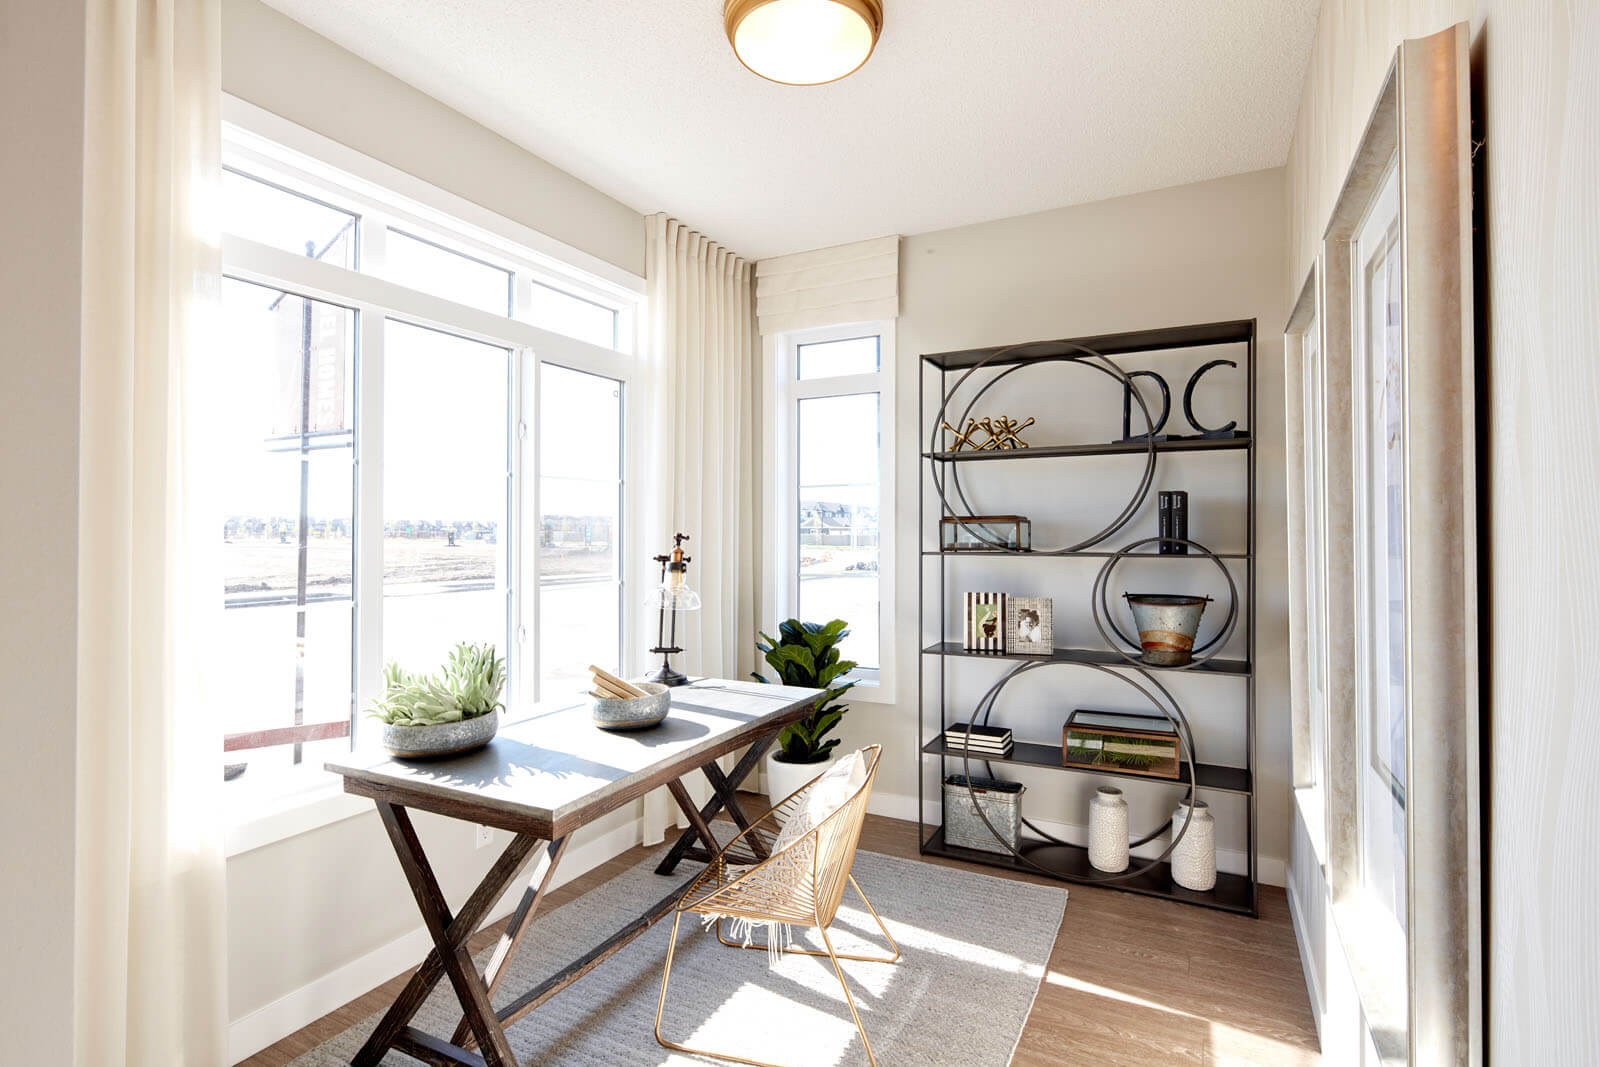 New Calgary  Model Home Mensa in Walden, located at 891 WALGROVE BLVD SE  Built By Cardel Homes Calgary